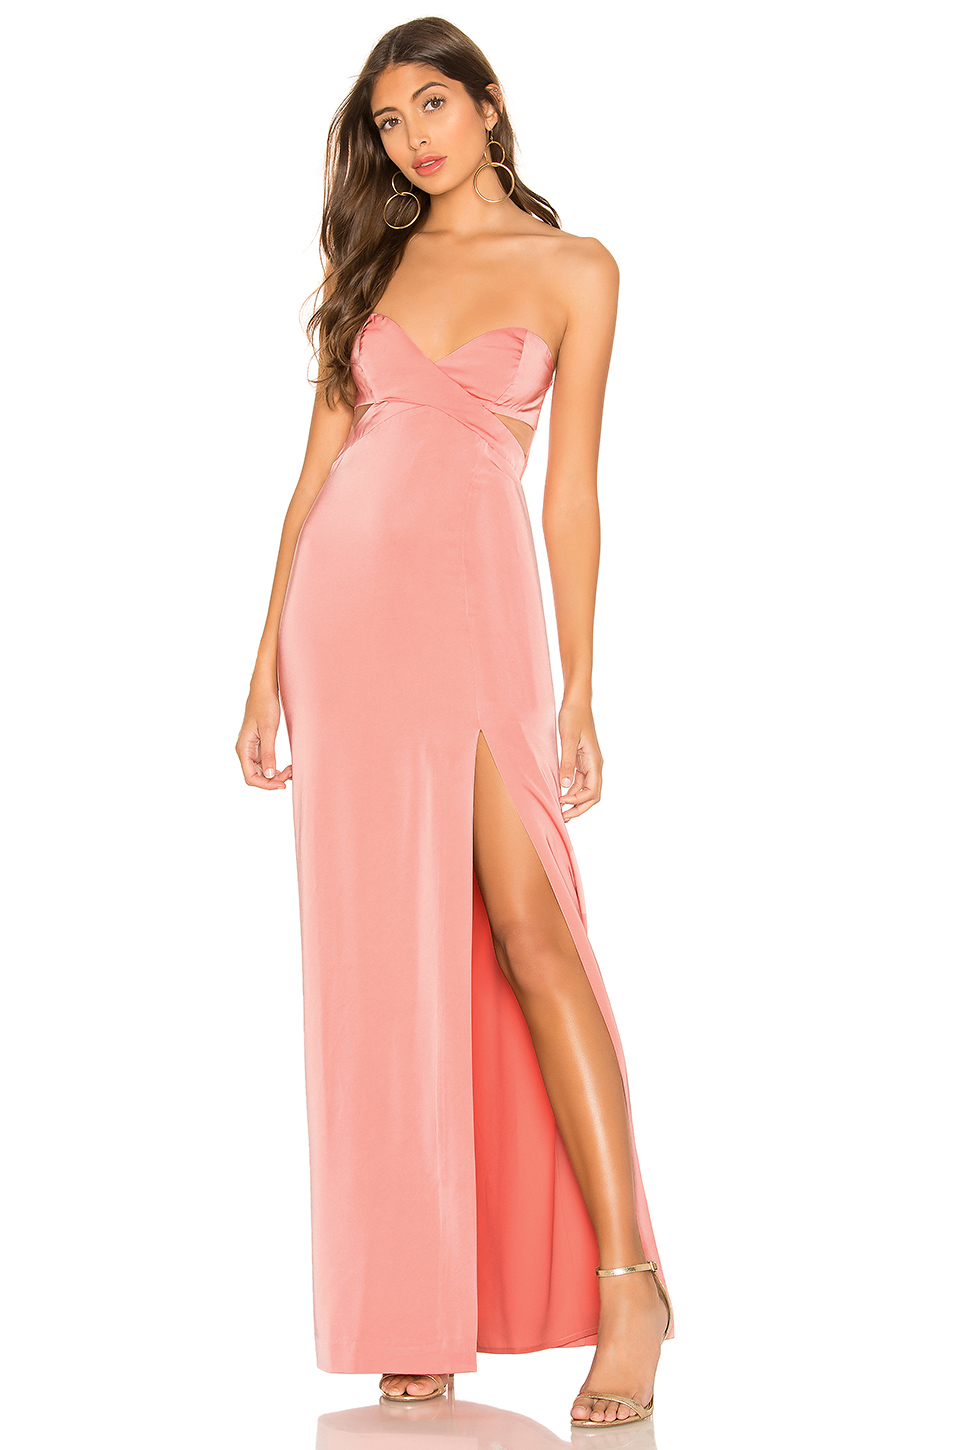 Lovers & Friends Darling Gown In Pink